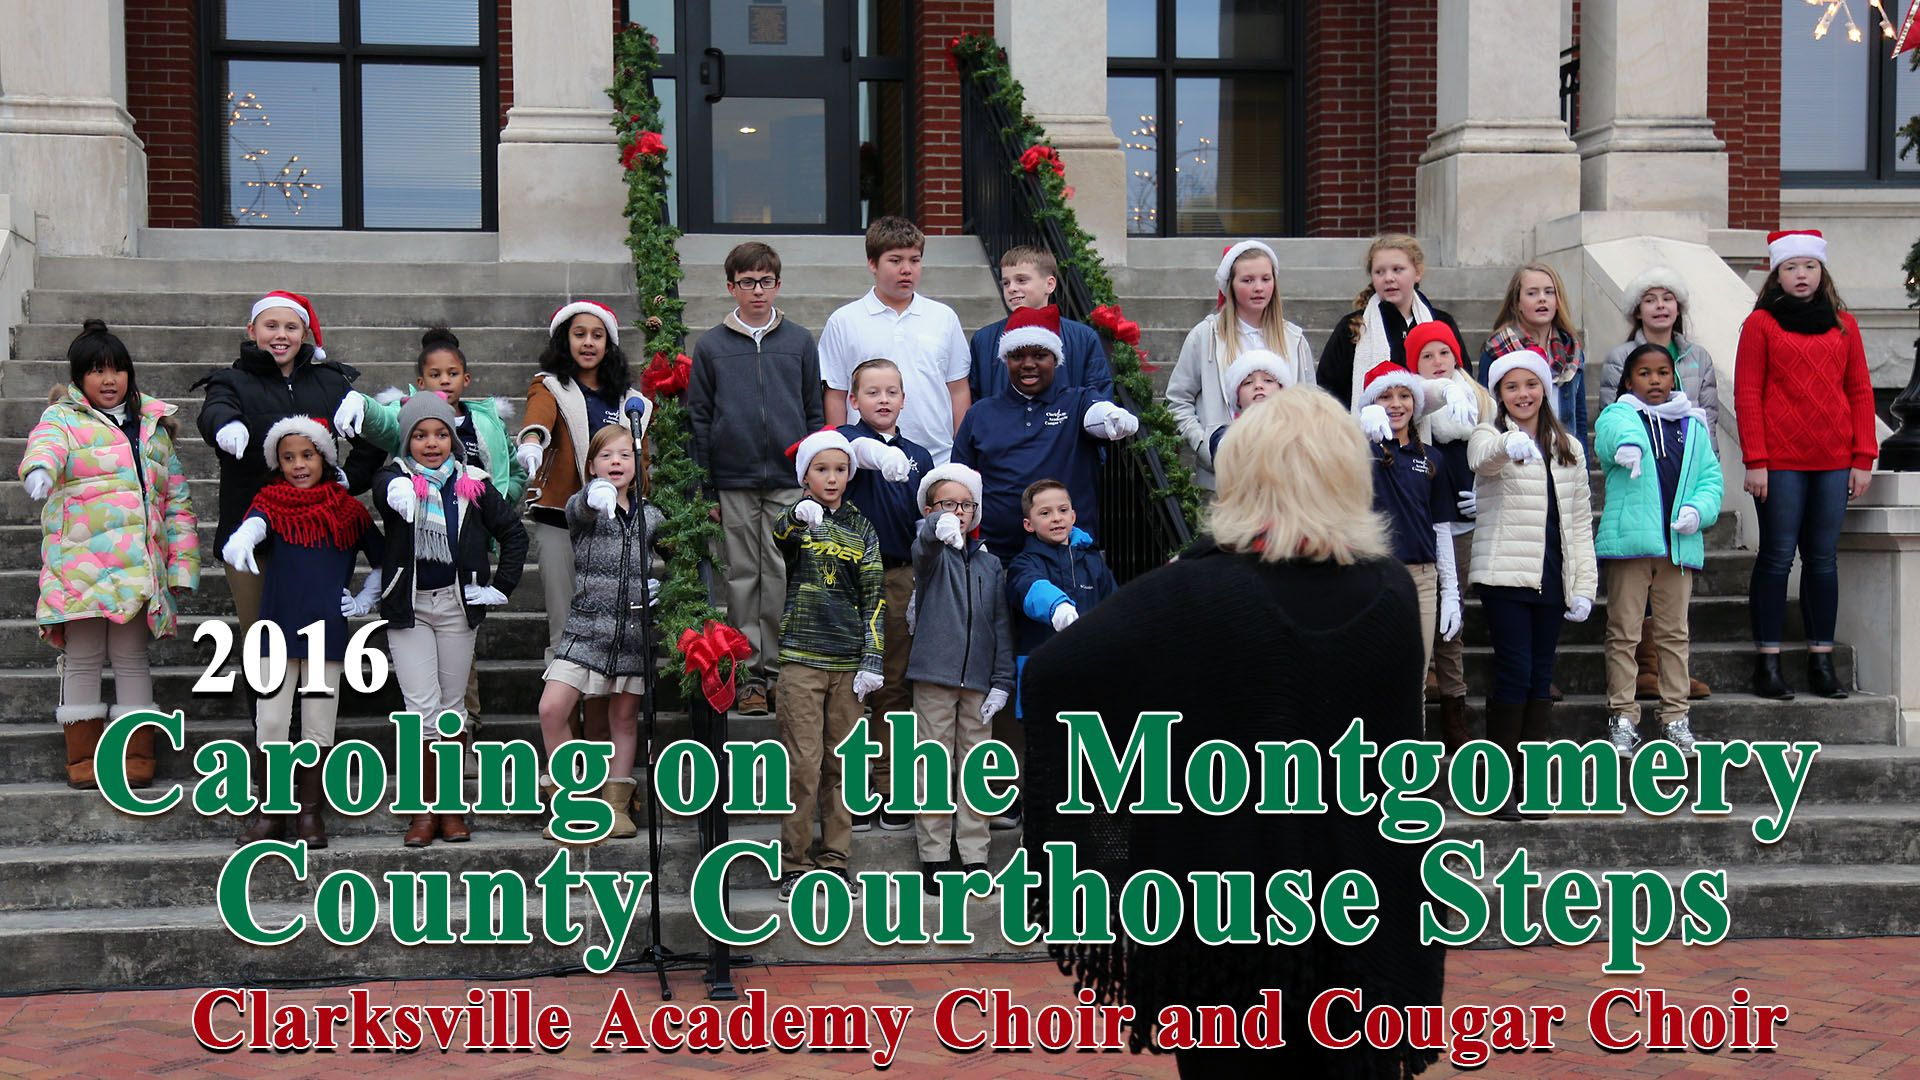 Clarksville Academy Choirs sing Christmas Carols on the